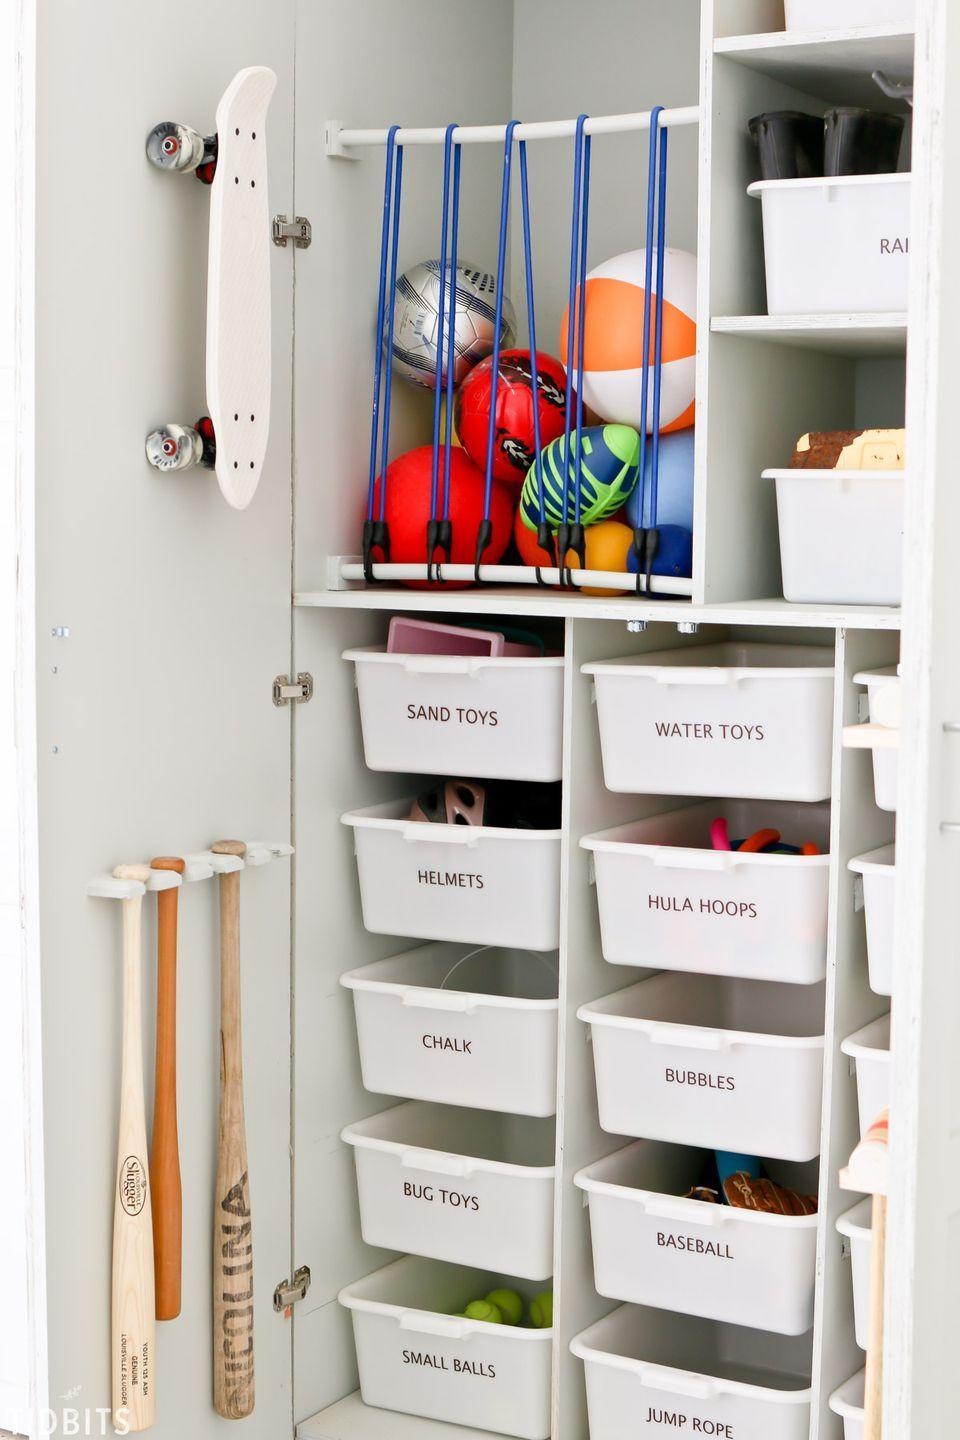 """<p>Have a place for everything and put everything in its place with a toy storage cabinet built especially for the garage. Labeled bins, bat holders, and a cleverly designed space for holding balls will help even the messiest kiddos keep things straight.</p><p><strong>Get the tutorial at <a href=""""https://www.tidbits-cami.com/garage-toy-storage/"""" rel=""""nofollow noopener"""" target=""""_blank"""" data-ylk=""""slk:Tidbits"""" class=""""link rapid-noclick-resp"""">Tidbits</a>.</strong><br></p><p><a class=""""link rapid-noclick-resp"""" href=""""https://www.amazon.com/Sauder-419496-Miscellaneous-Storage-Cabinet/dp/B01M0QM2O7/ref=cs_sr_dp_3?tag=syn-yahoo-20&ascsubtag=%5Bartid%7C10050.g.36449426%5Bsrc%7Cyahoo-us"""" rel=""""nofollow noopener"""" target=""""_blank"""" data-ylk=""""slk:SHOP CABINETS"""">SHOP CABINETS</a><br></p>"""